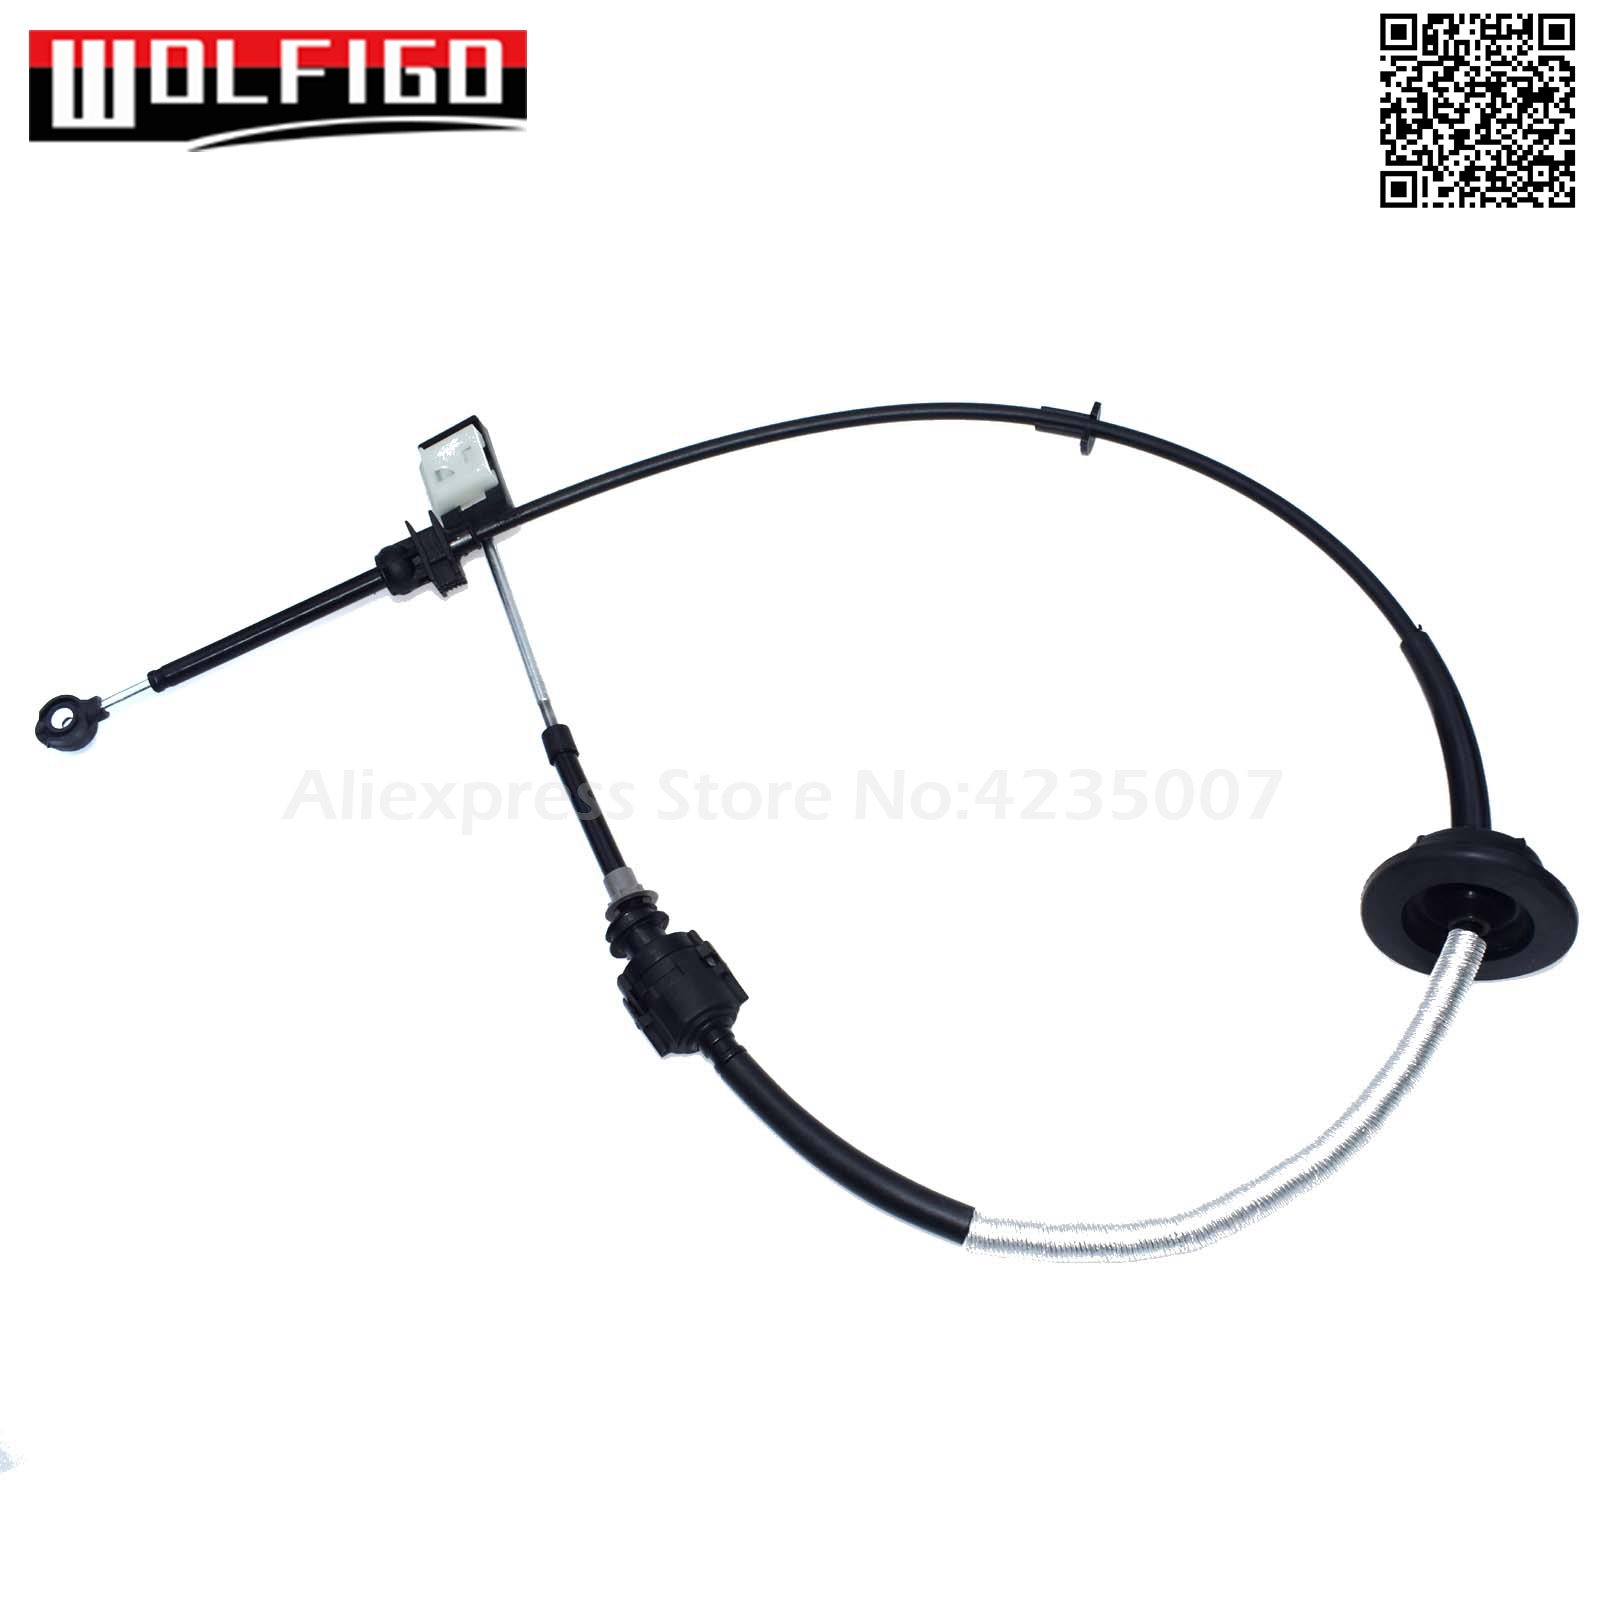 Transmission Shift Cable 5L3Z7E395AA Fit for FordF-150 2005-2008 Lincoln 4R70W